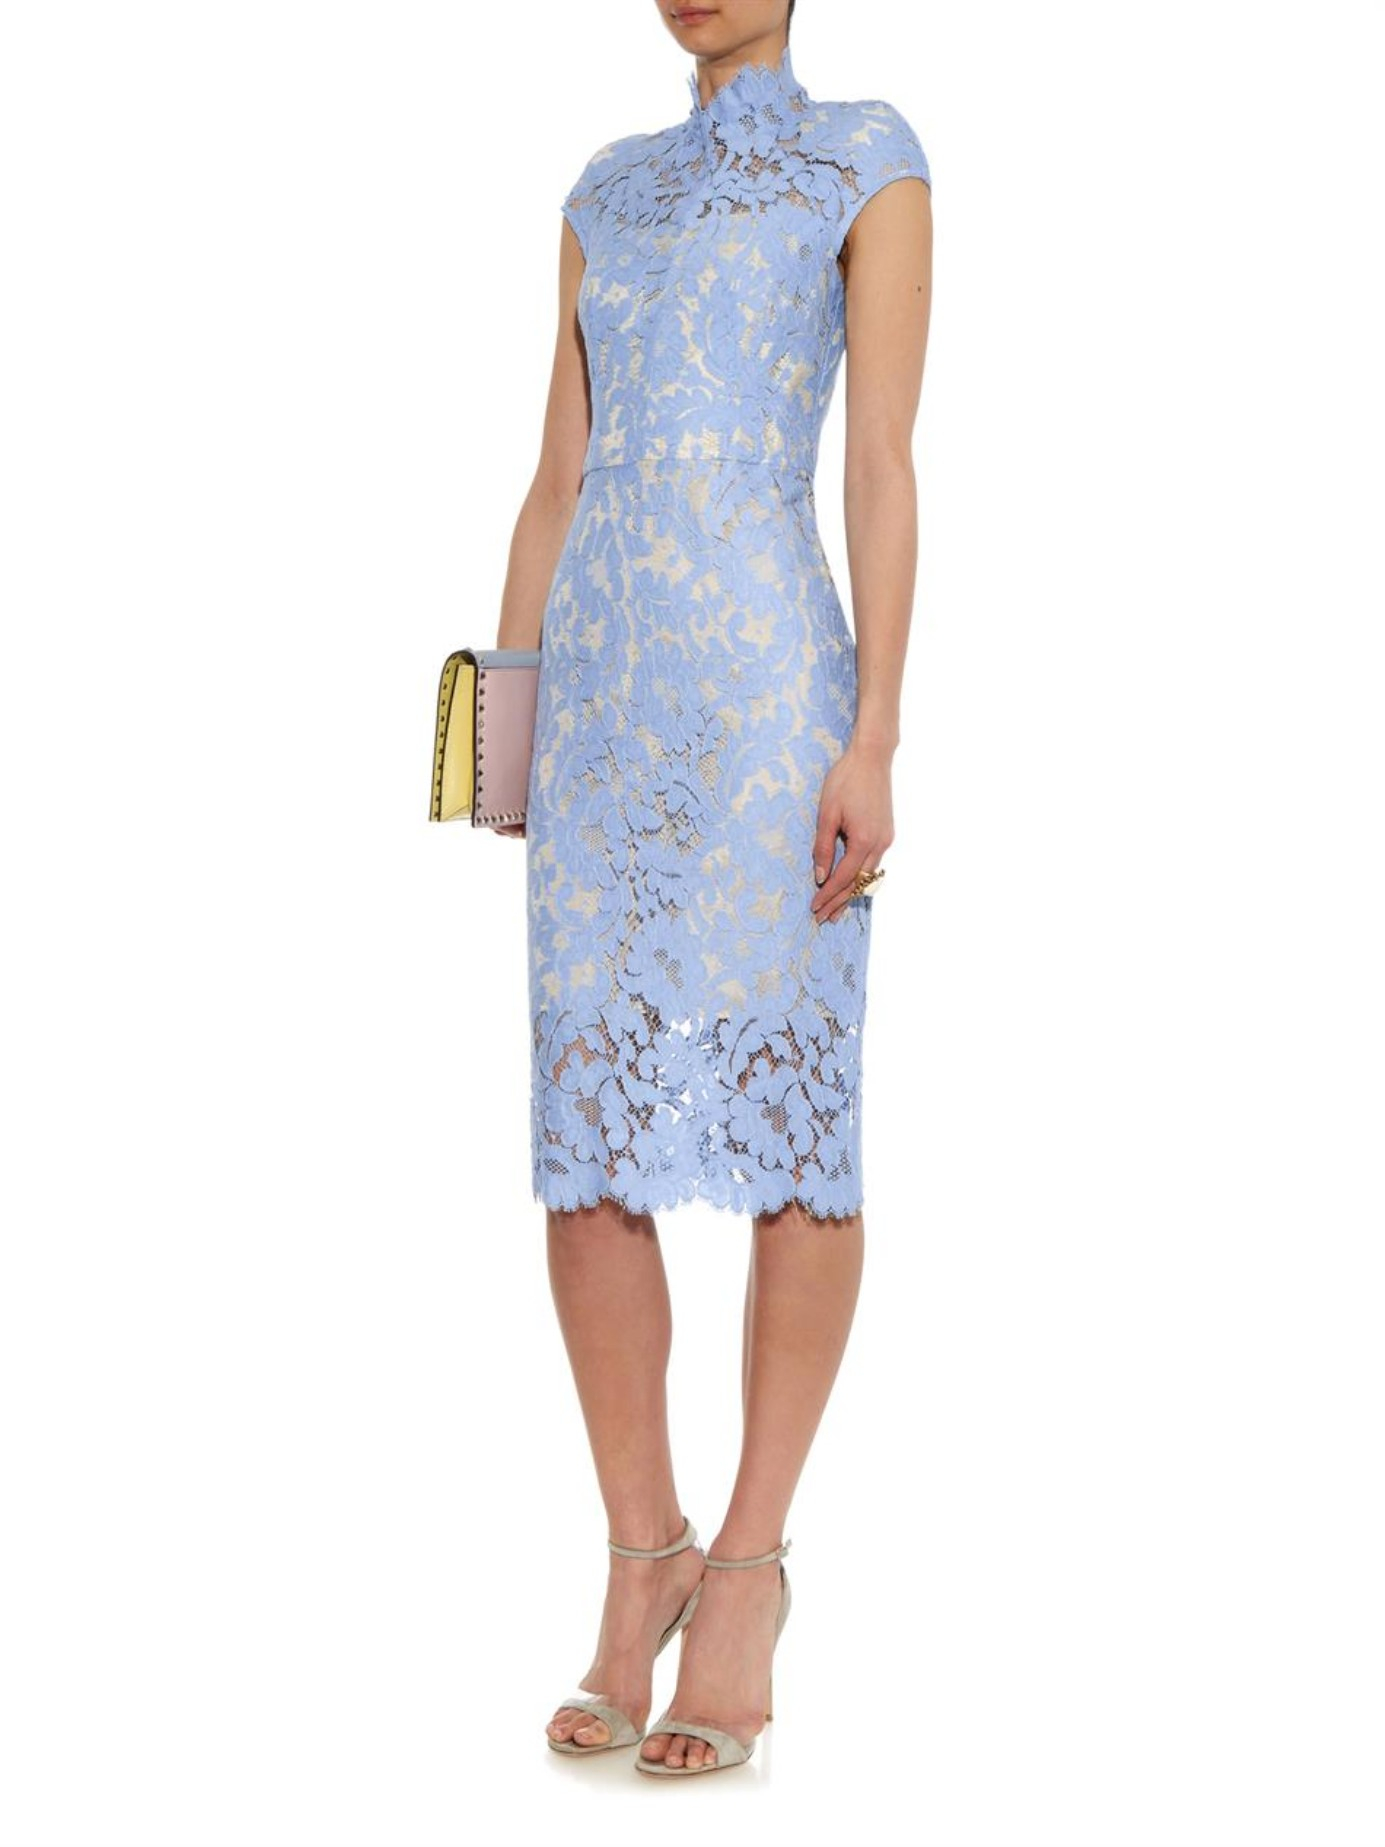 Ideal for wedding guests, a classic style for any occasion. Team your royal blue lace midi dress with a statement fascinator for wedding guest wear or a statement neckpiece for an /5(42).